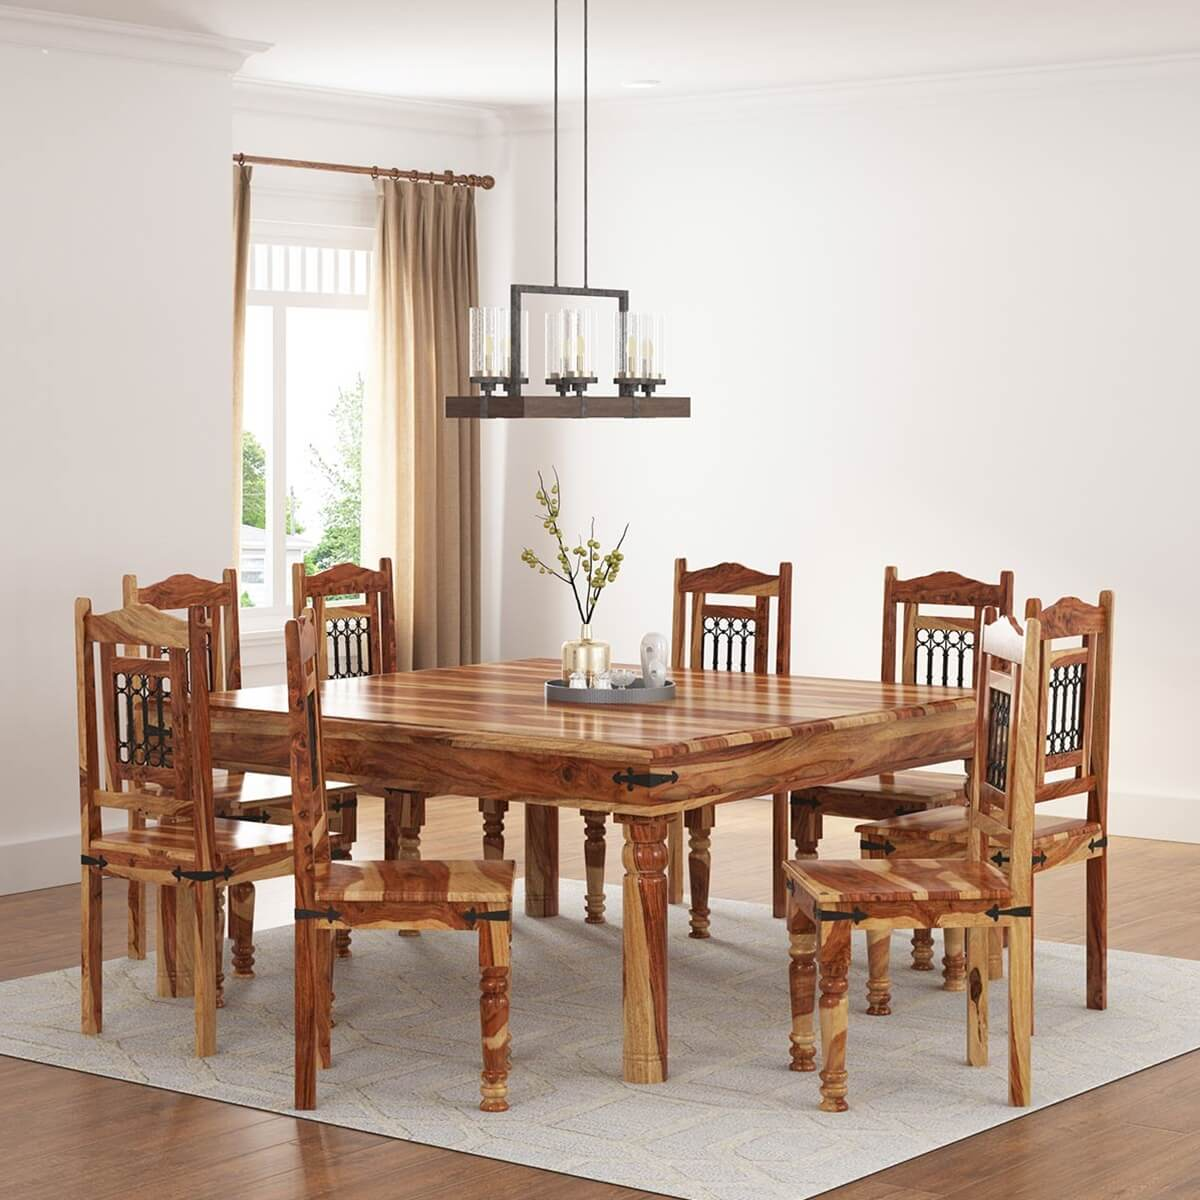 Person Square Dining Room Table